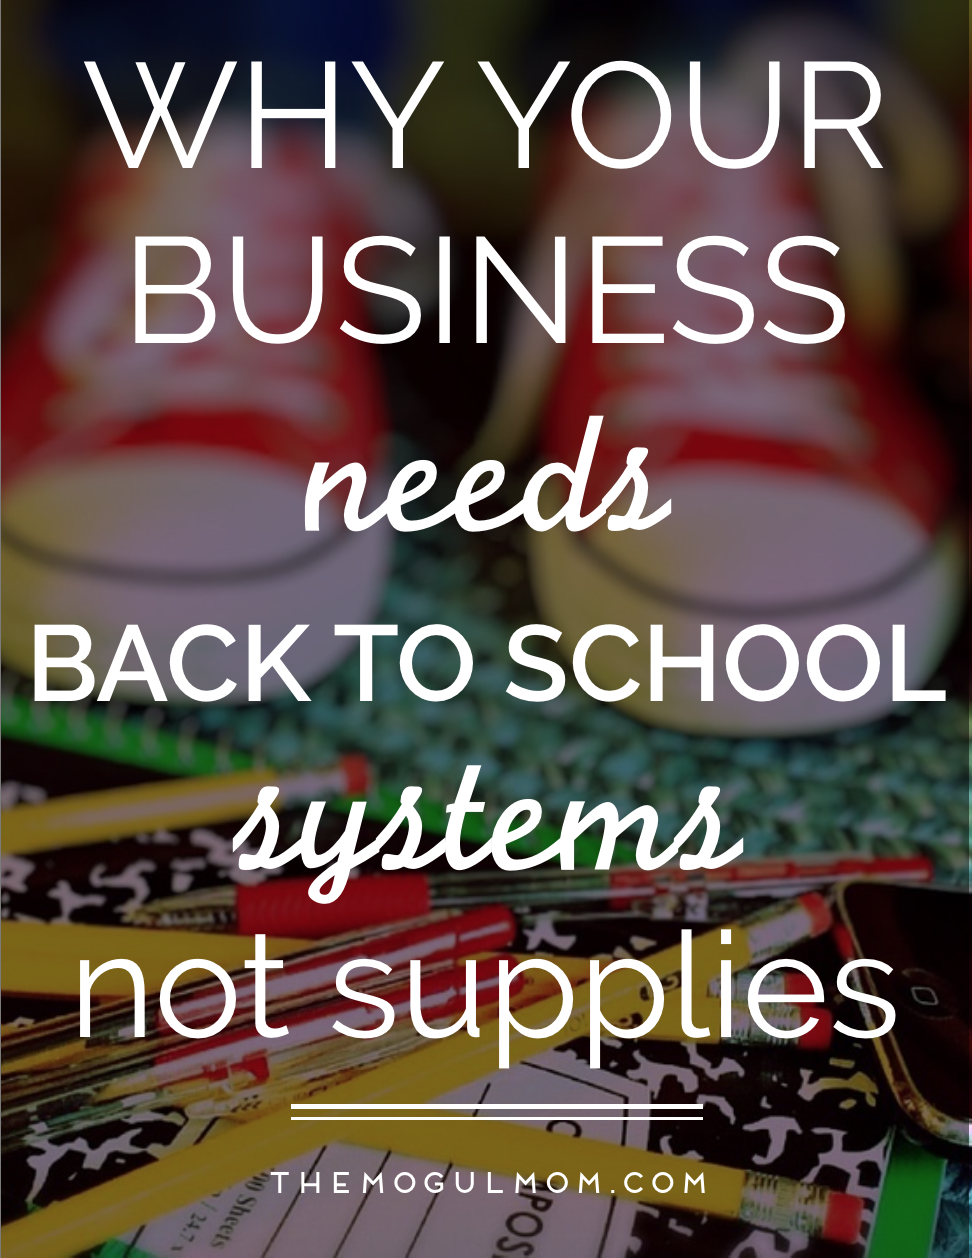 Why Your Business Needs Back to School Systems, NOT Back to School Supplies